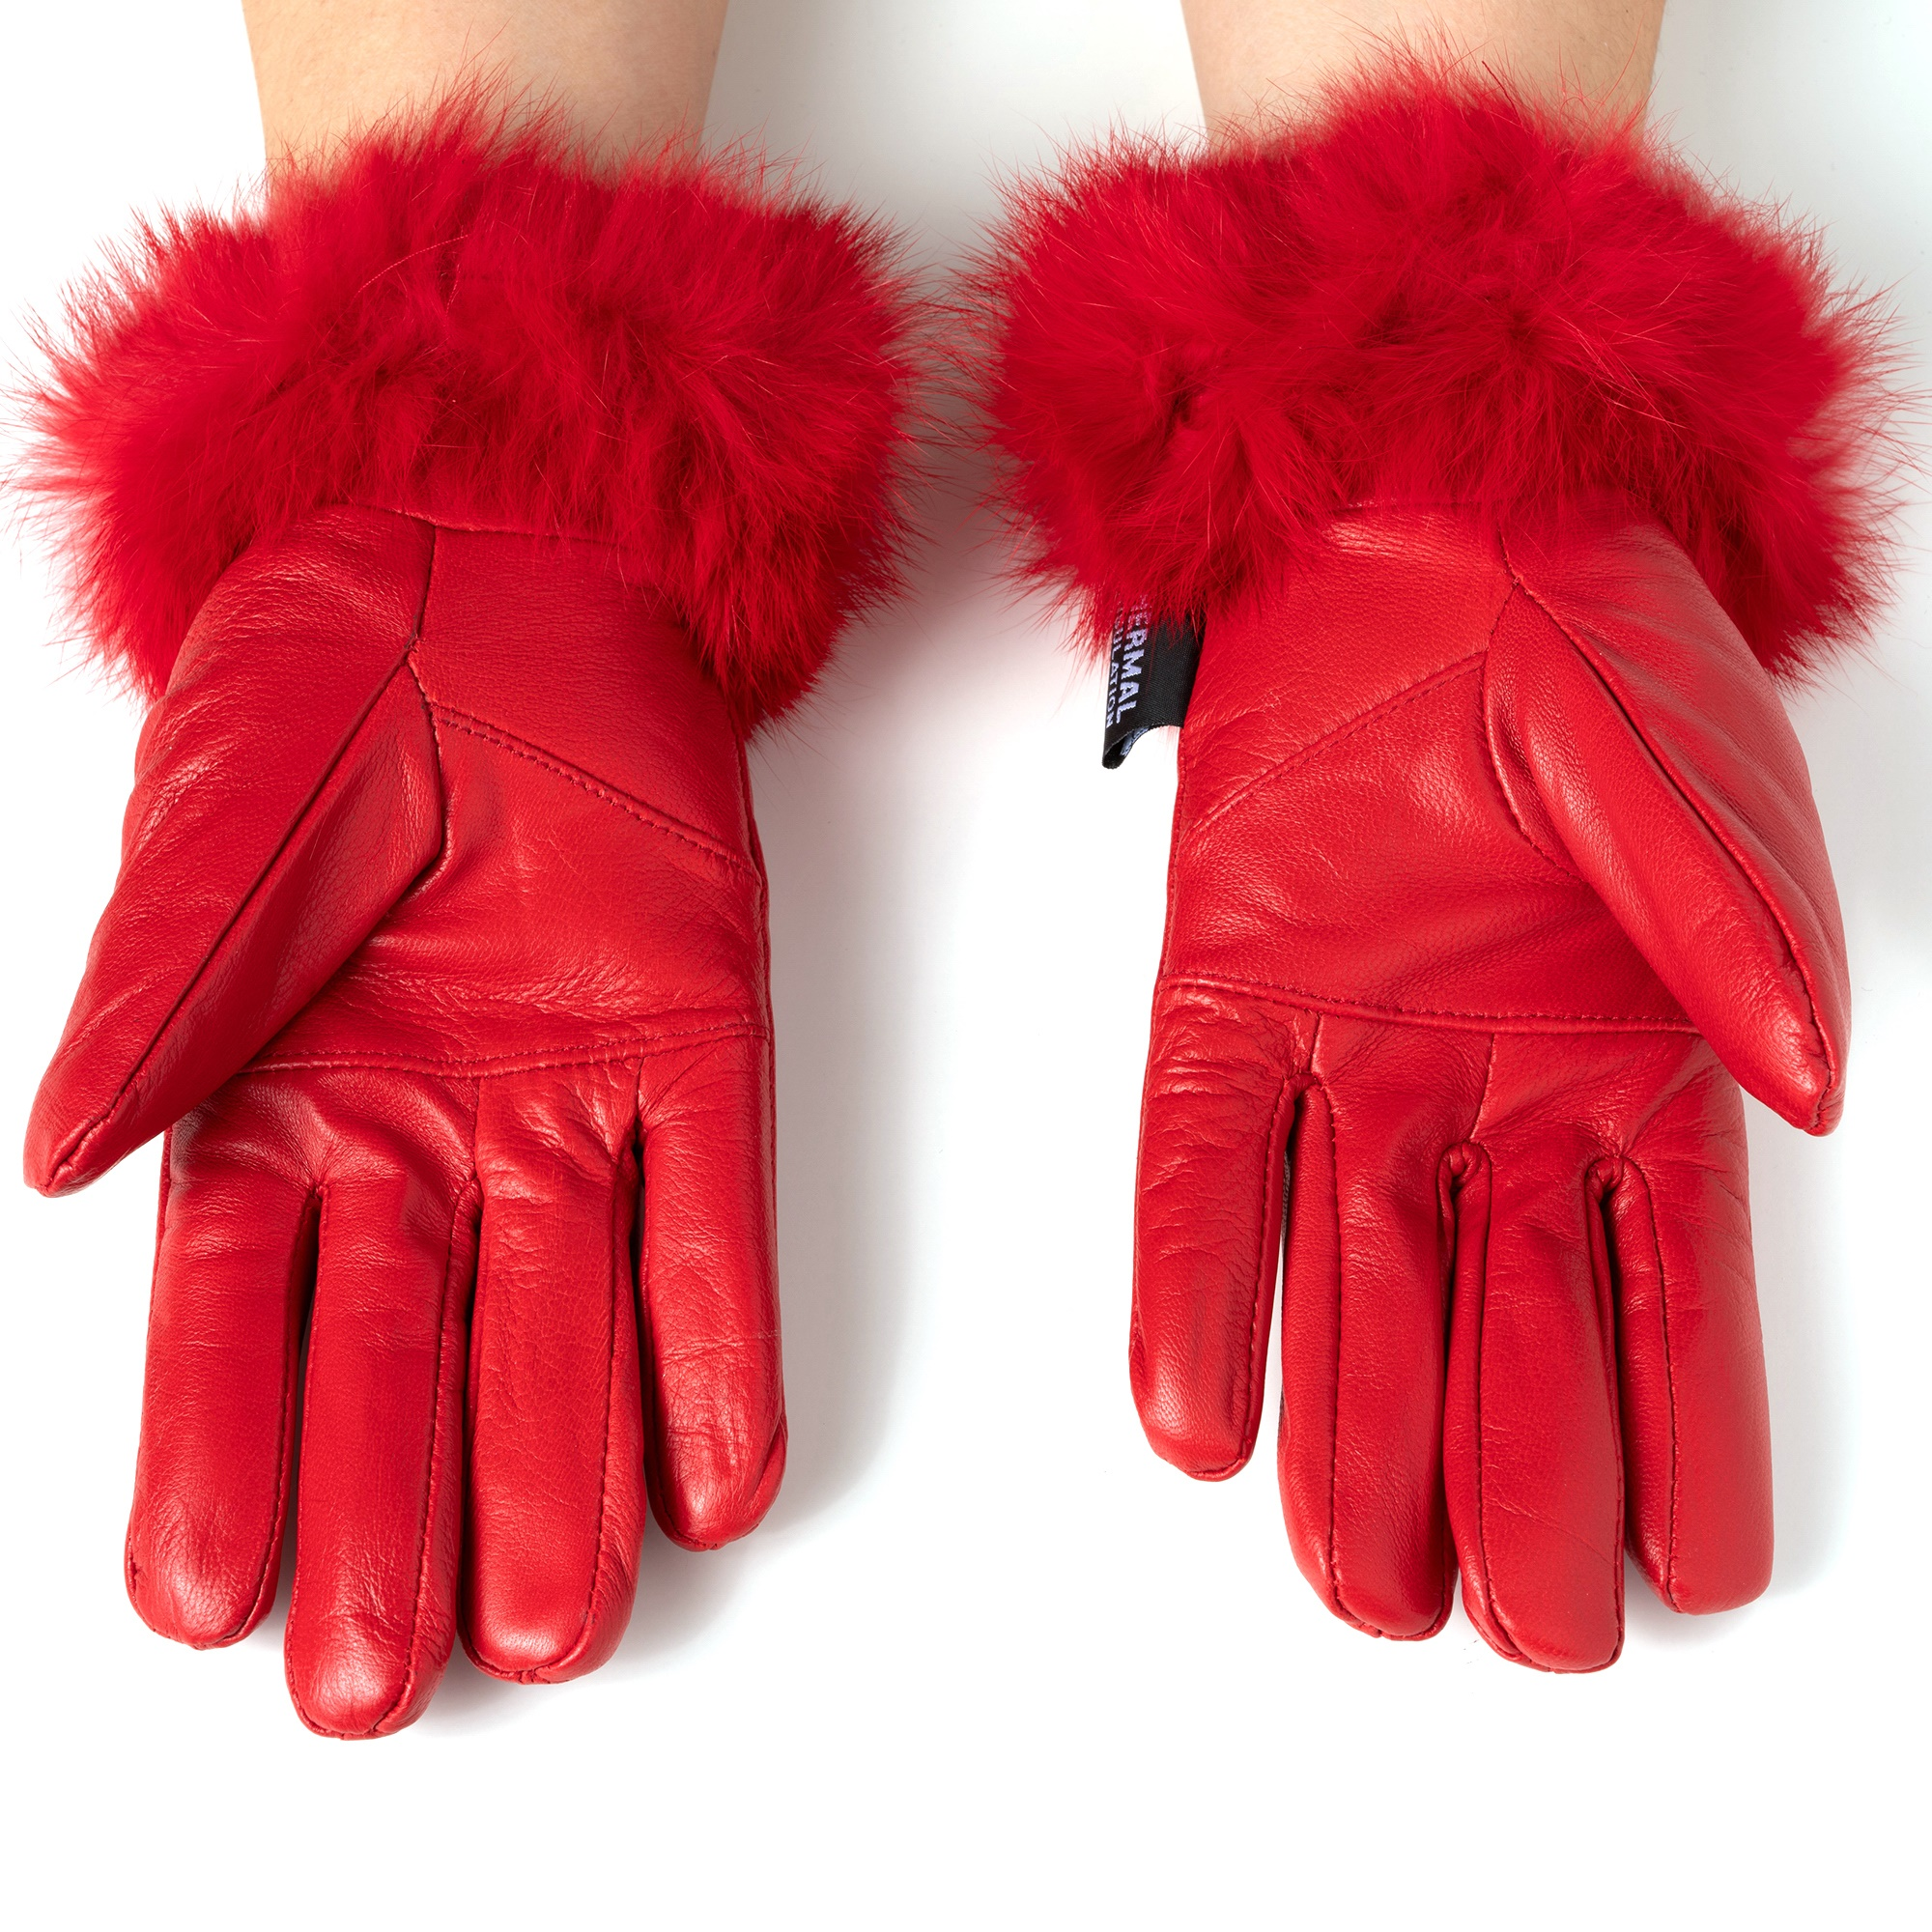 Alpine-Swiss-Womens-Dressy-Gloves-Genuine-Leather-Thermal-Lining-Fur-Trim-Cuff thumbnail 31